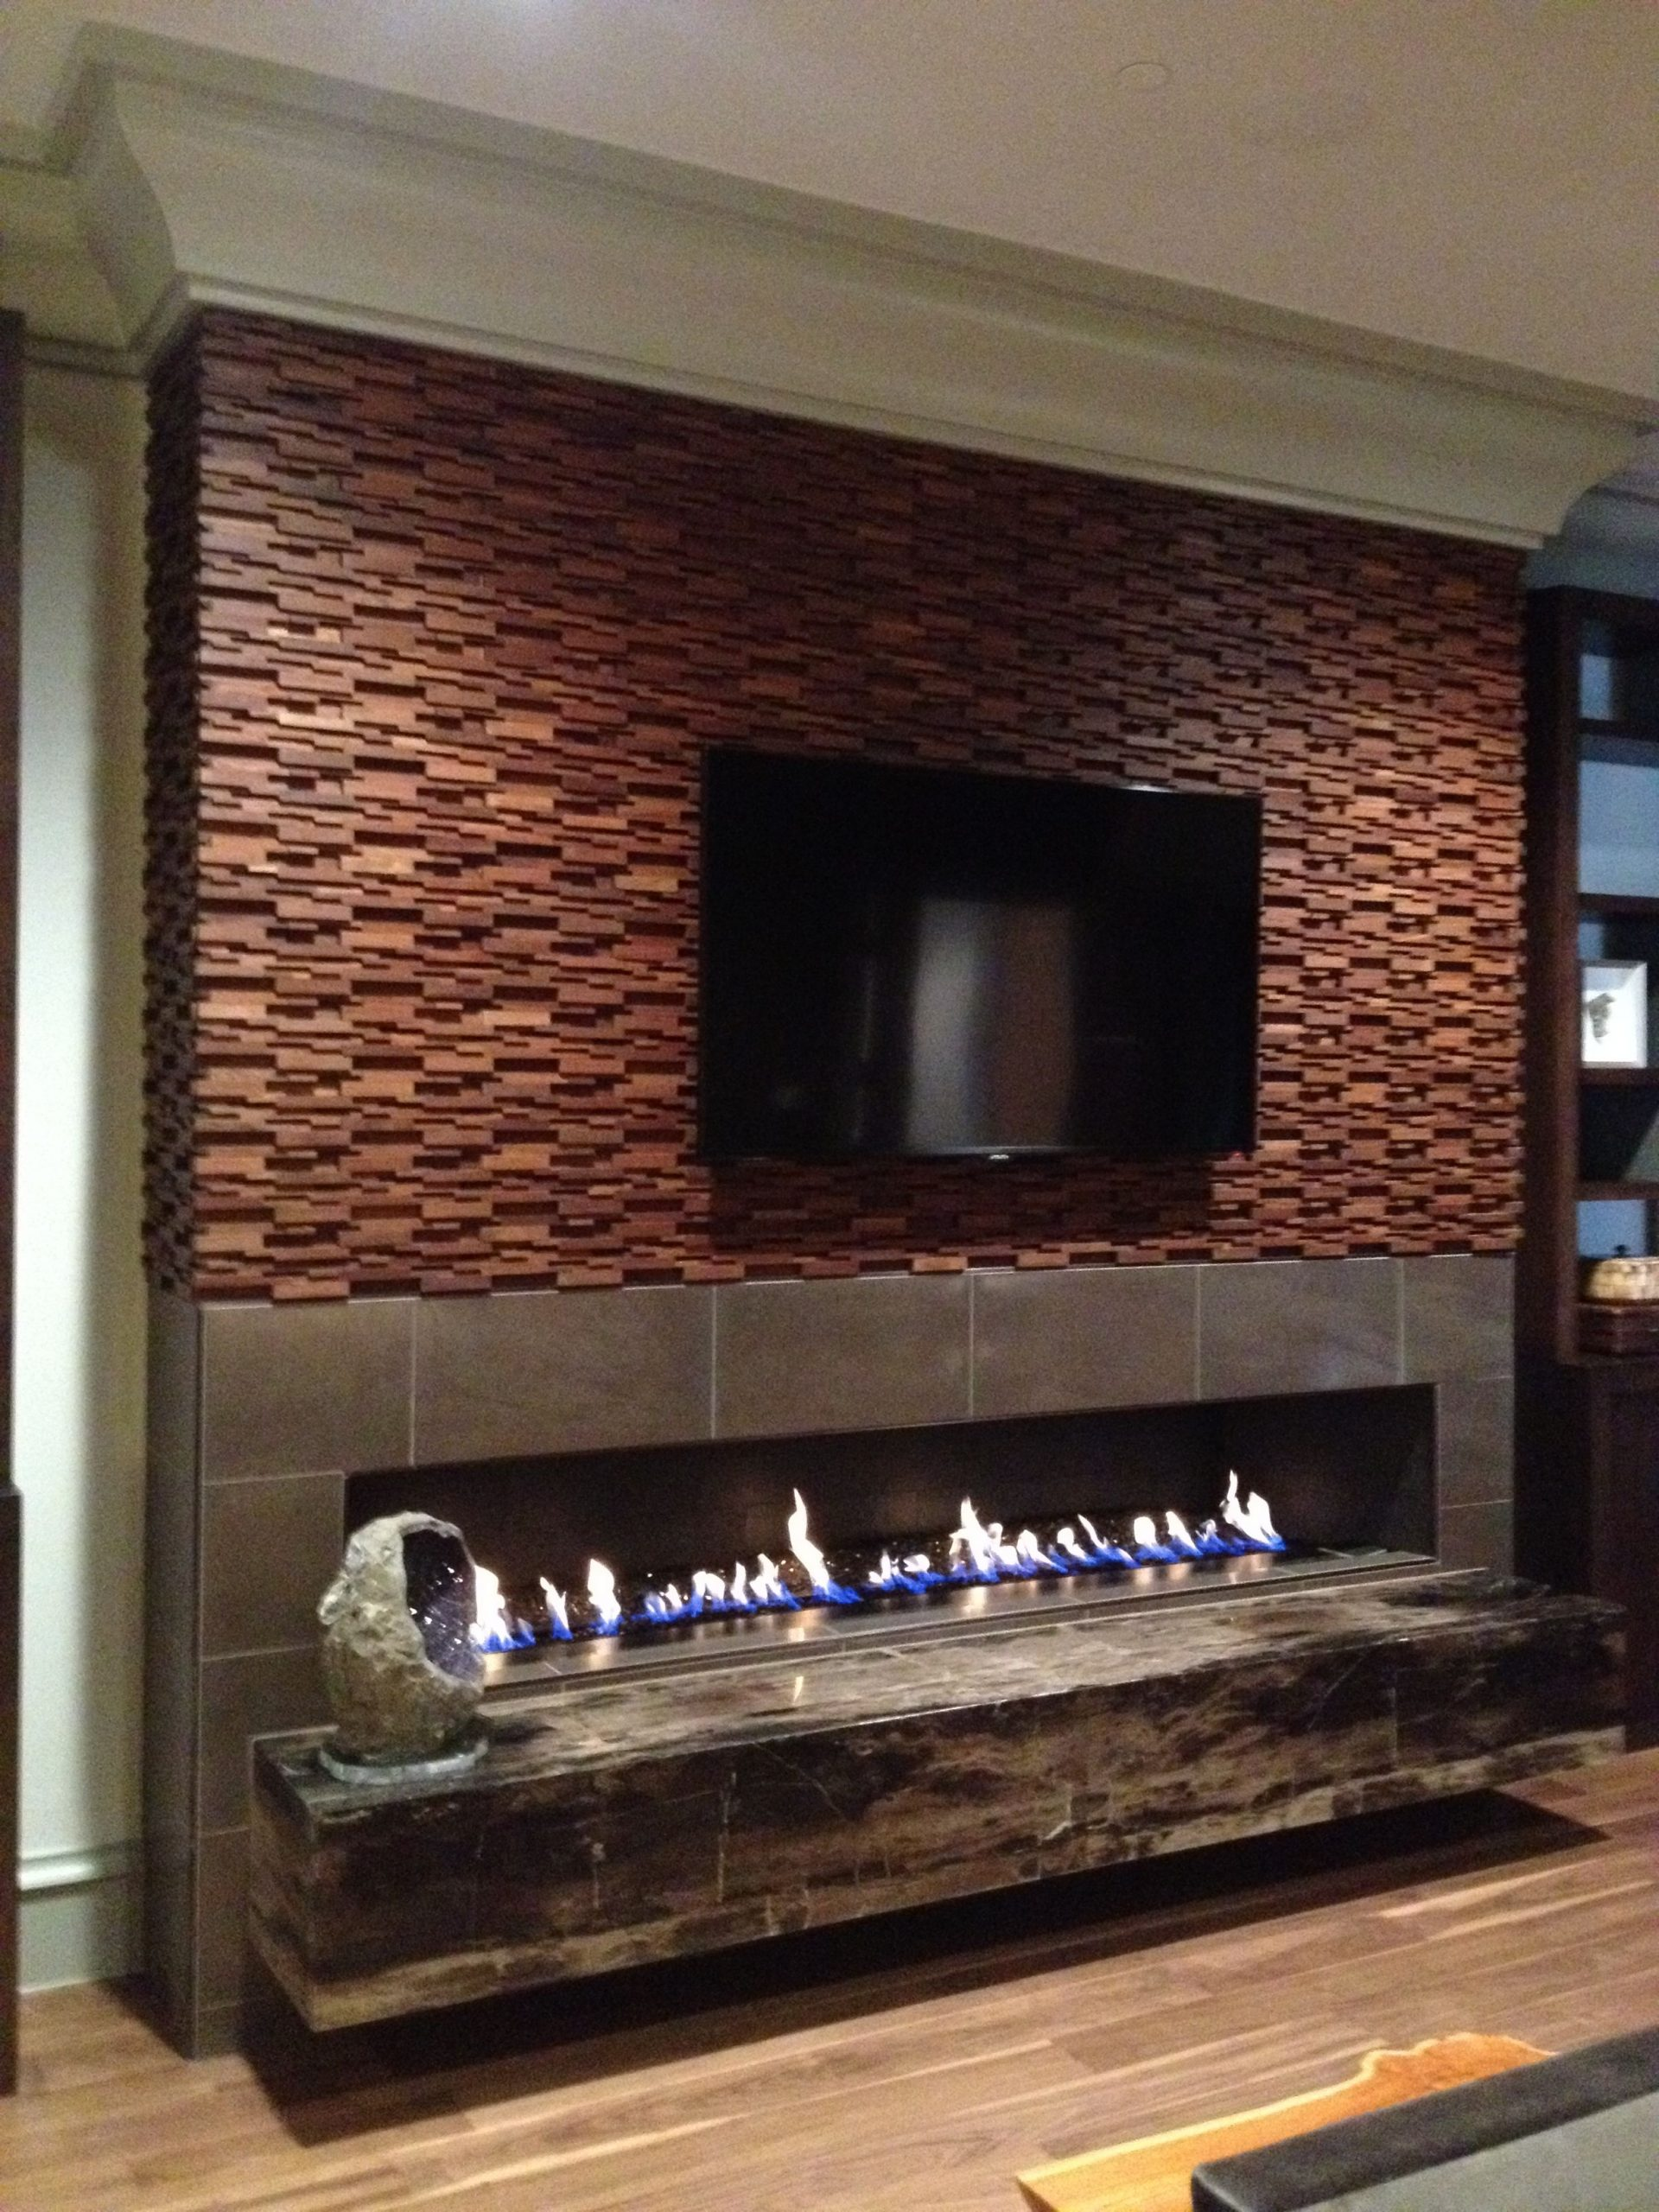 Wall Mounted Natural Gas Fireplace New Amazing Fireplace Surround for Linear Fireplace with Wall